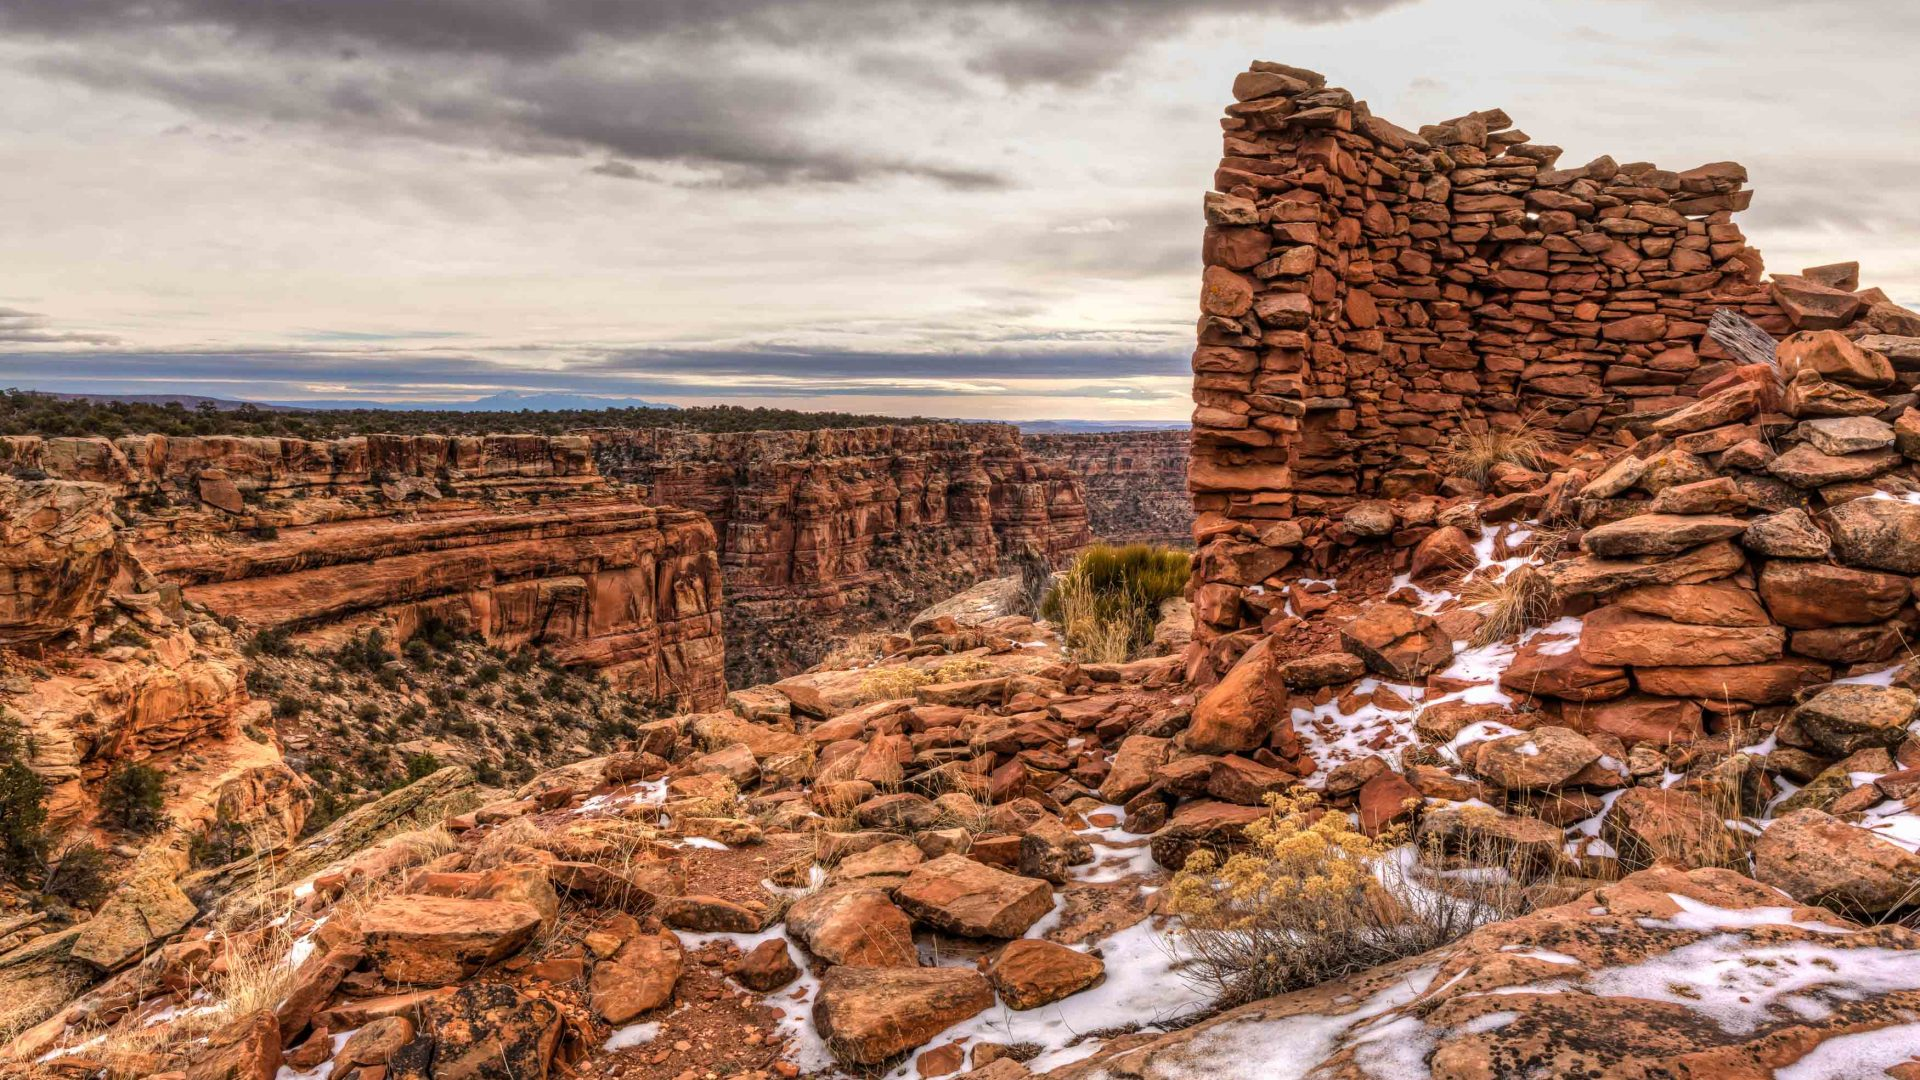 Snow-covered remnants of an Anasazi tower ruin on the rim of Mule Canyon in the Cedar Mesa area of Bears Ears National Monument, Utah.